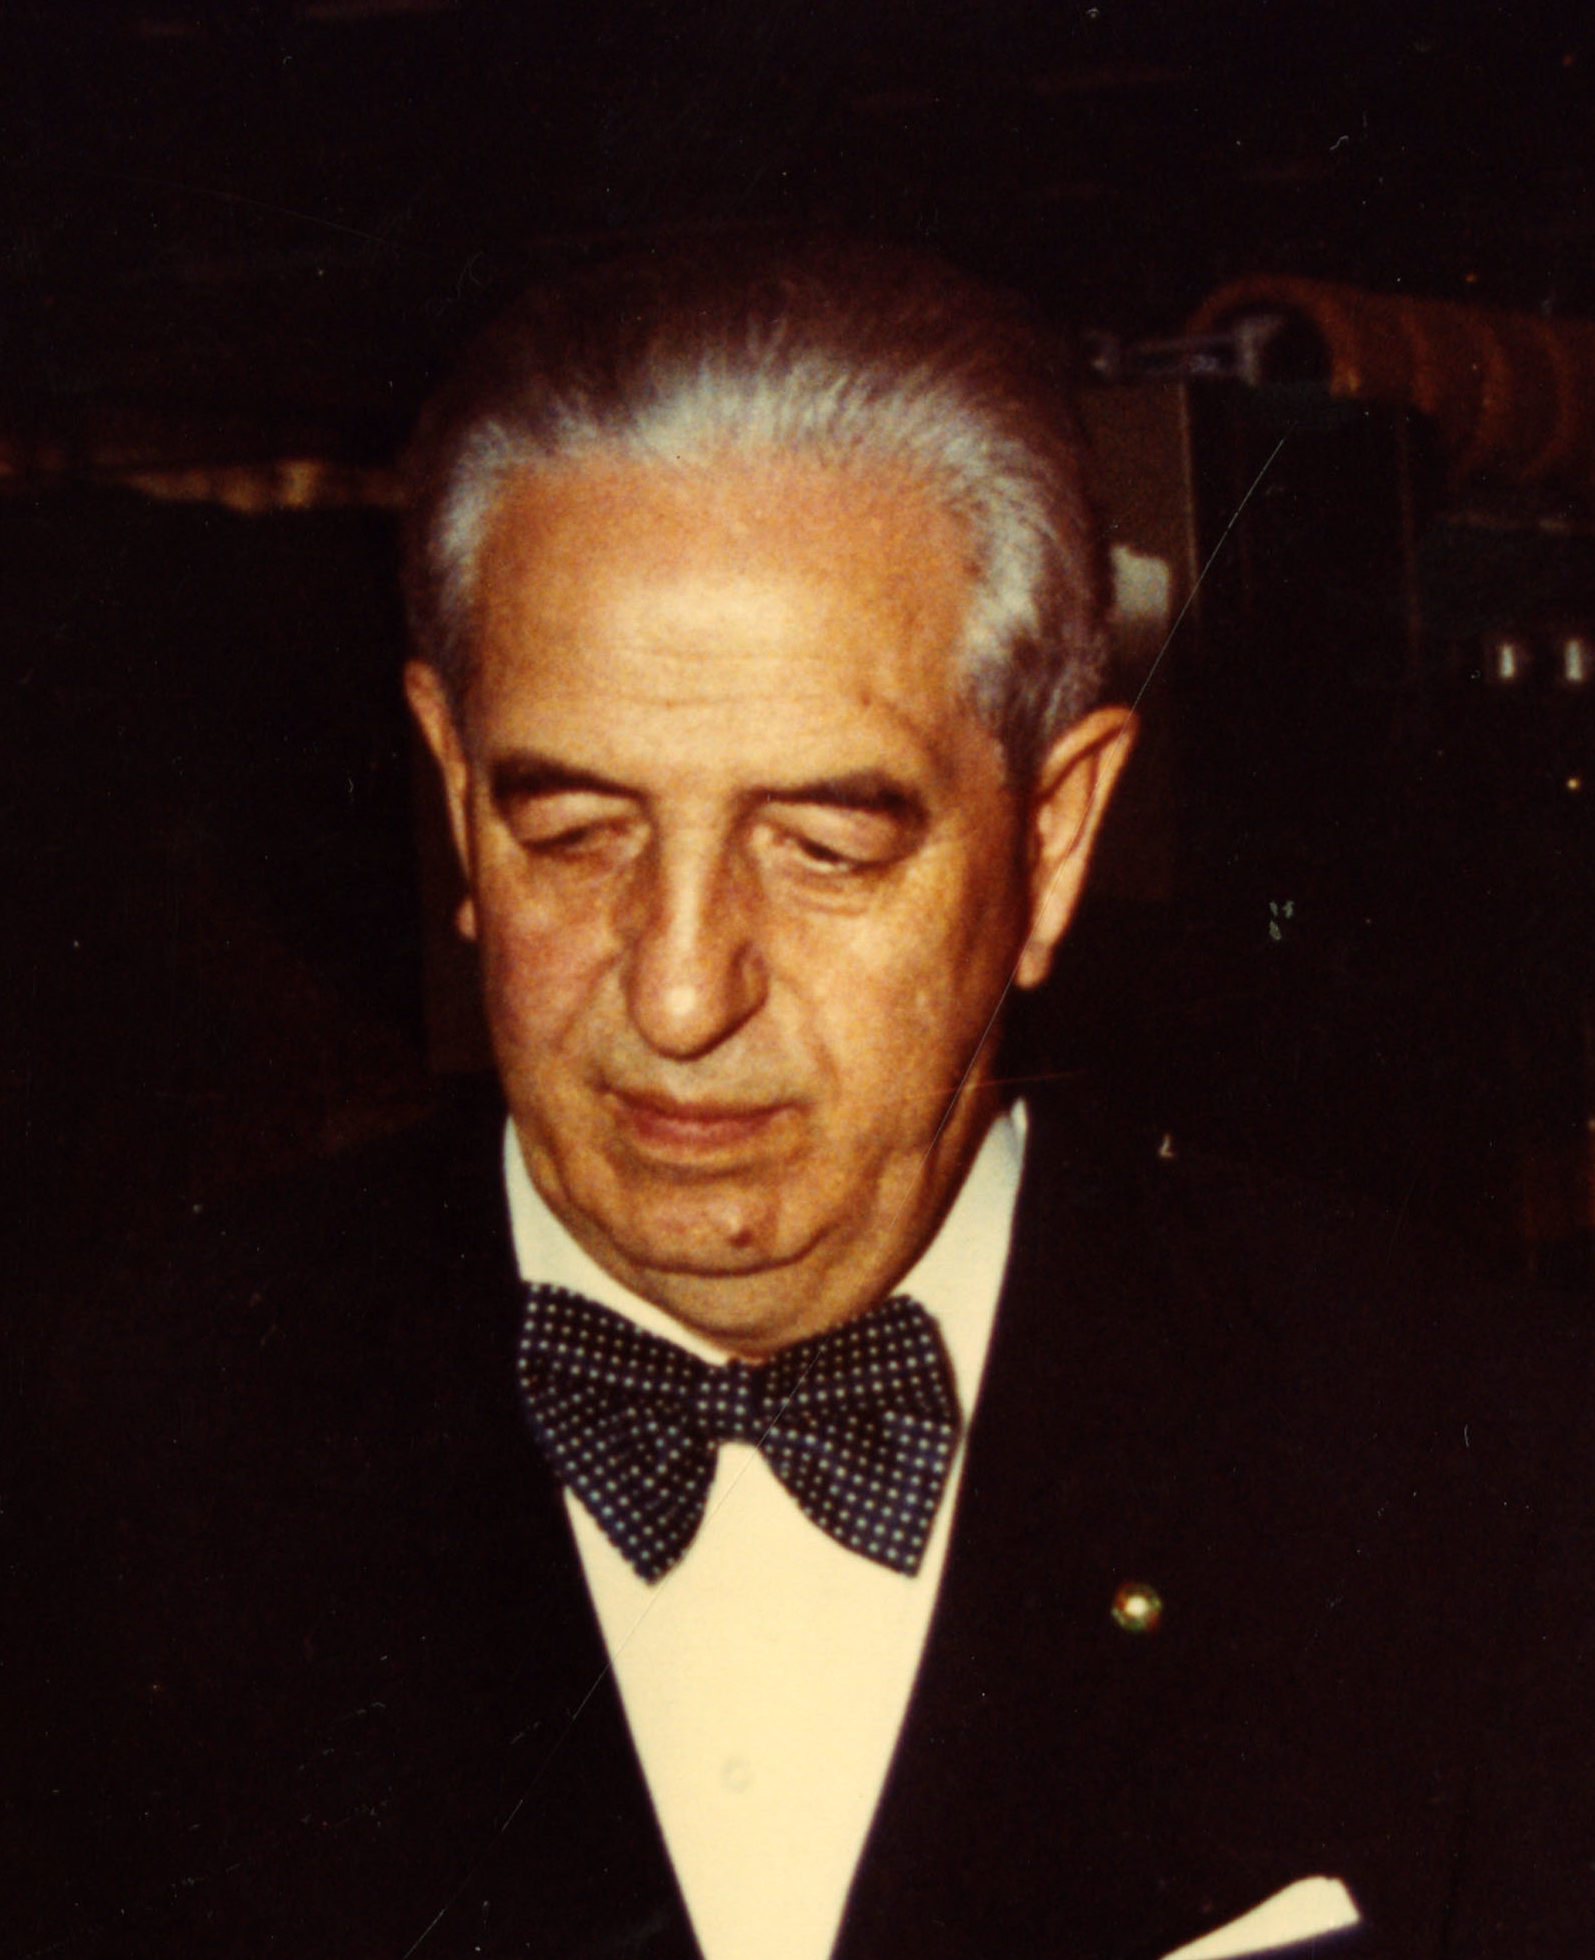 Mario Pavesi in the Eighties